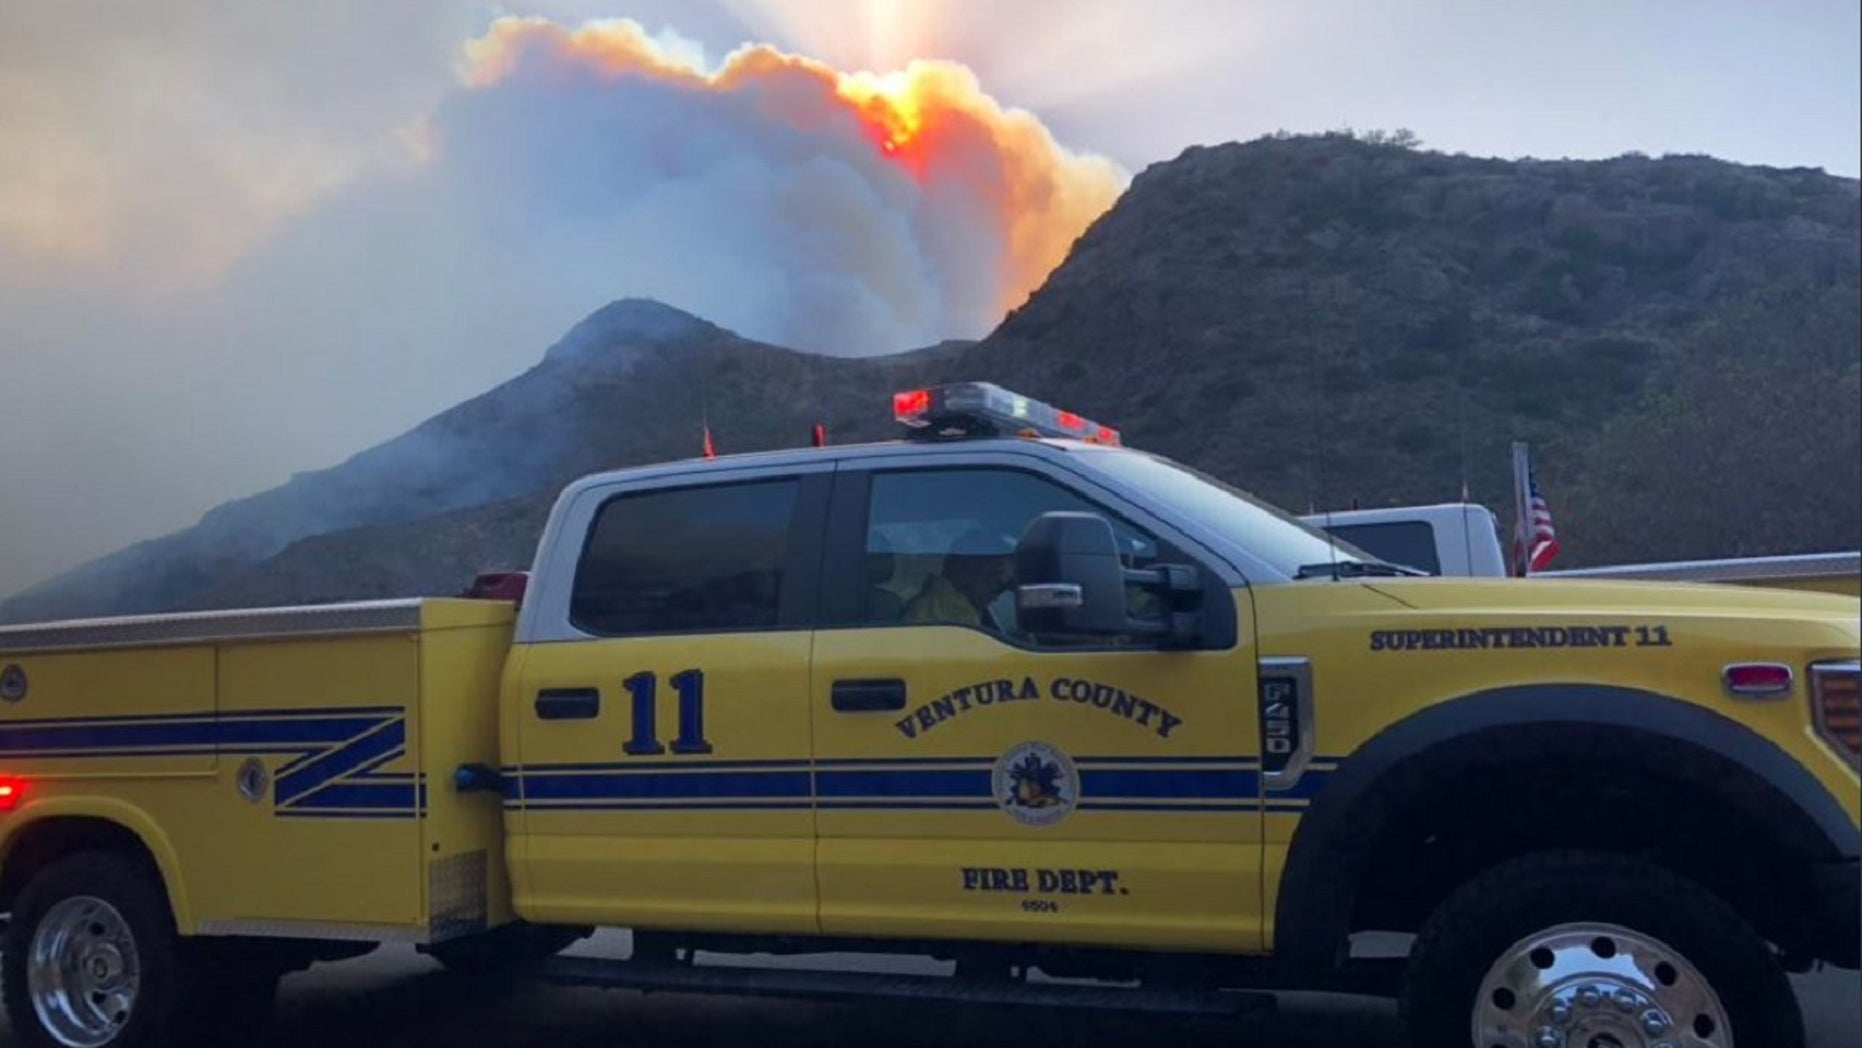 Two fires have descended on areas of Ventura County late Thursday, forcing mandatory evacuations.